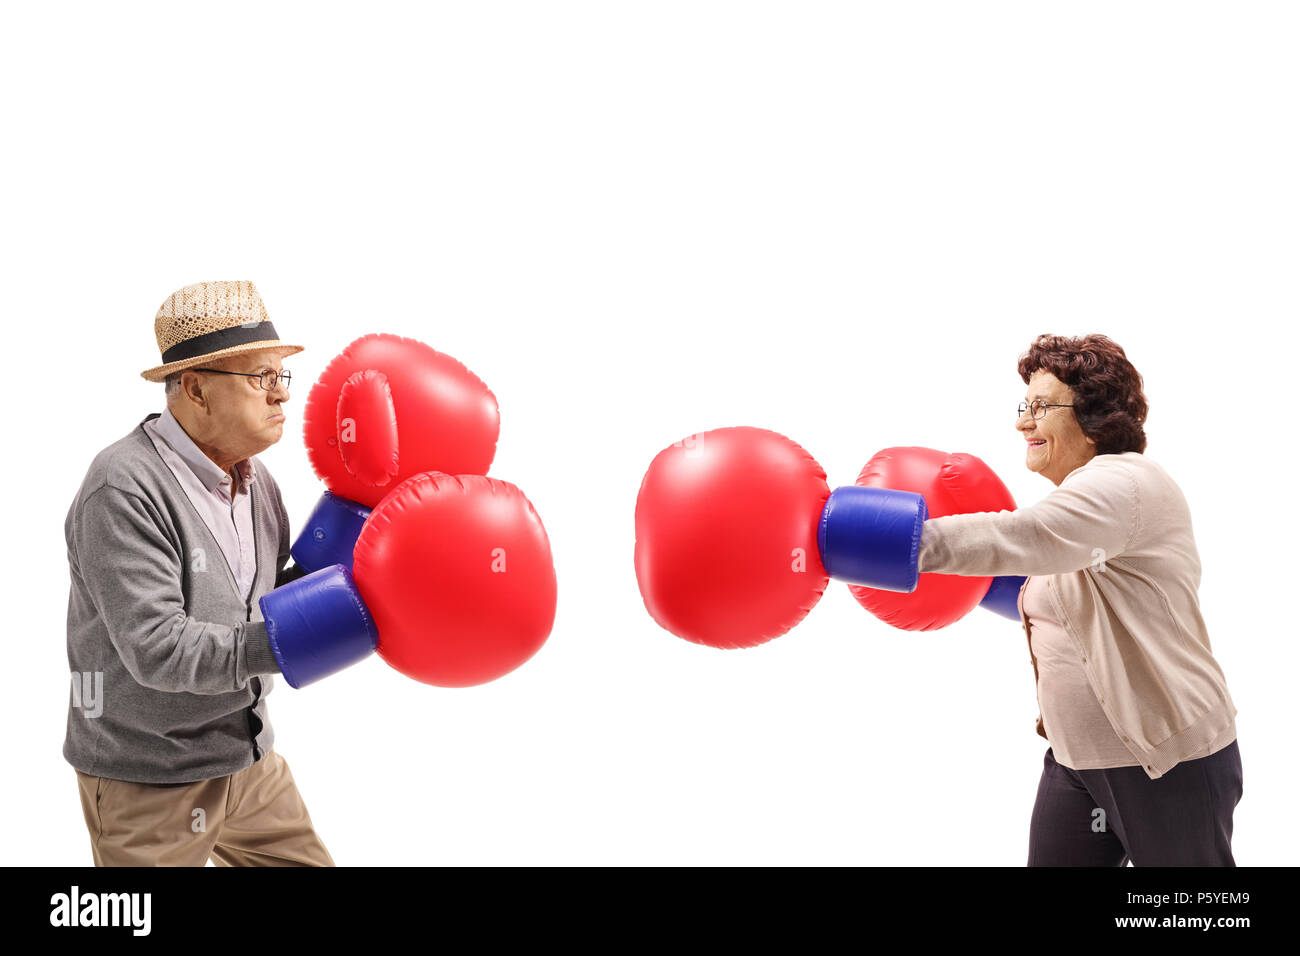 Elderly man and an elderly woman fighting each other with big boxing gloves isolated on white background - Stock Image